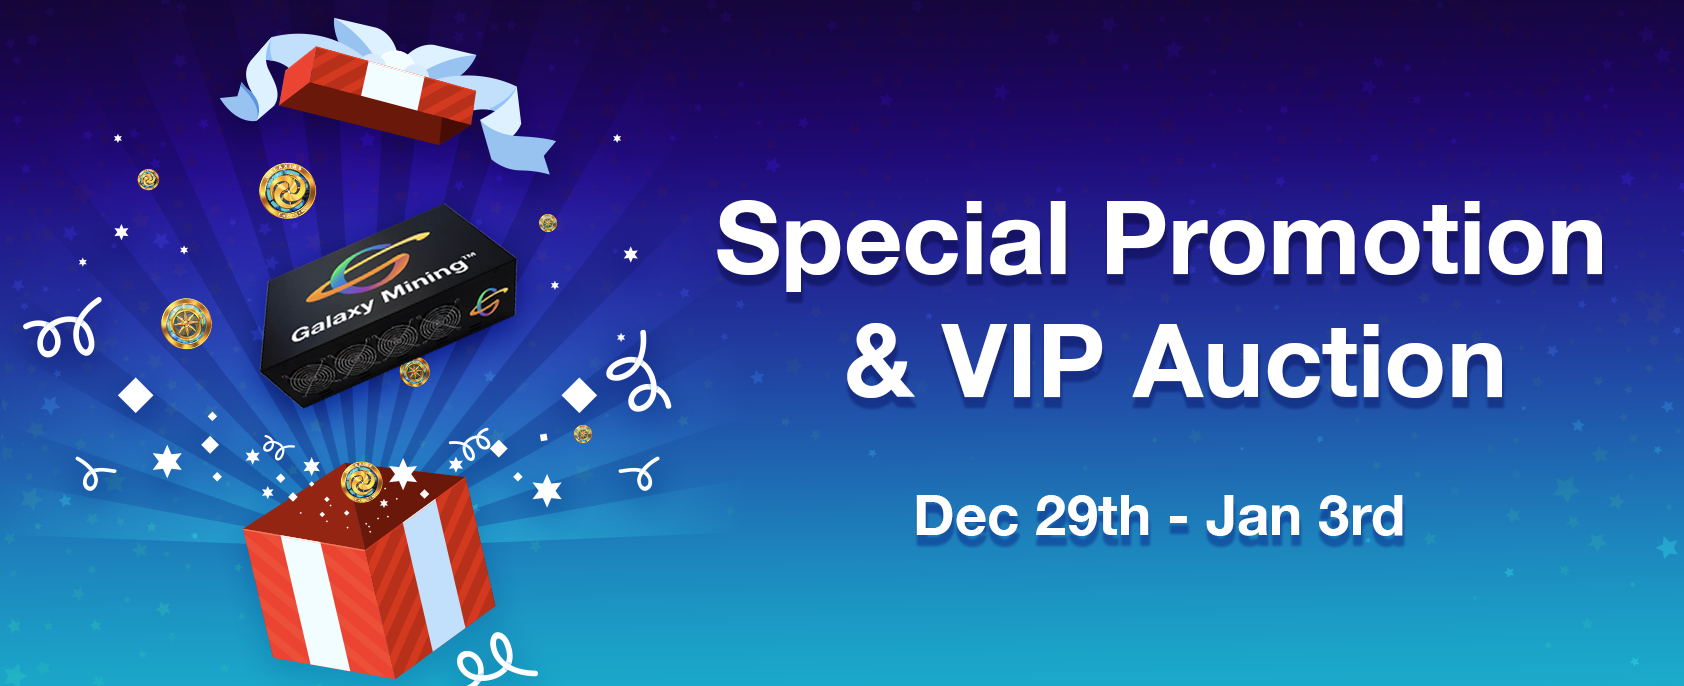 Special_Promotion_VIP_Auction